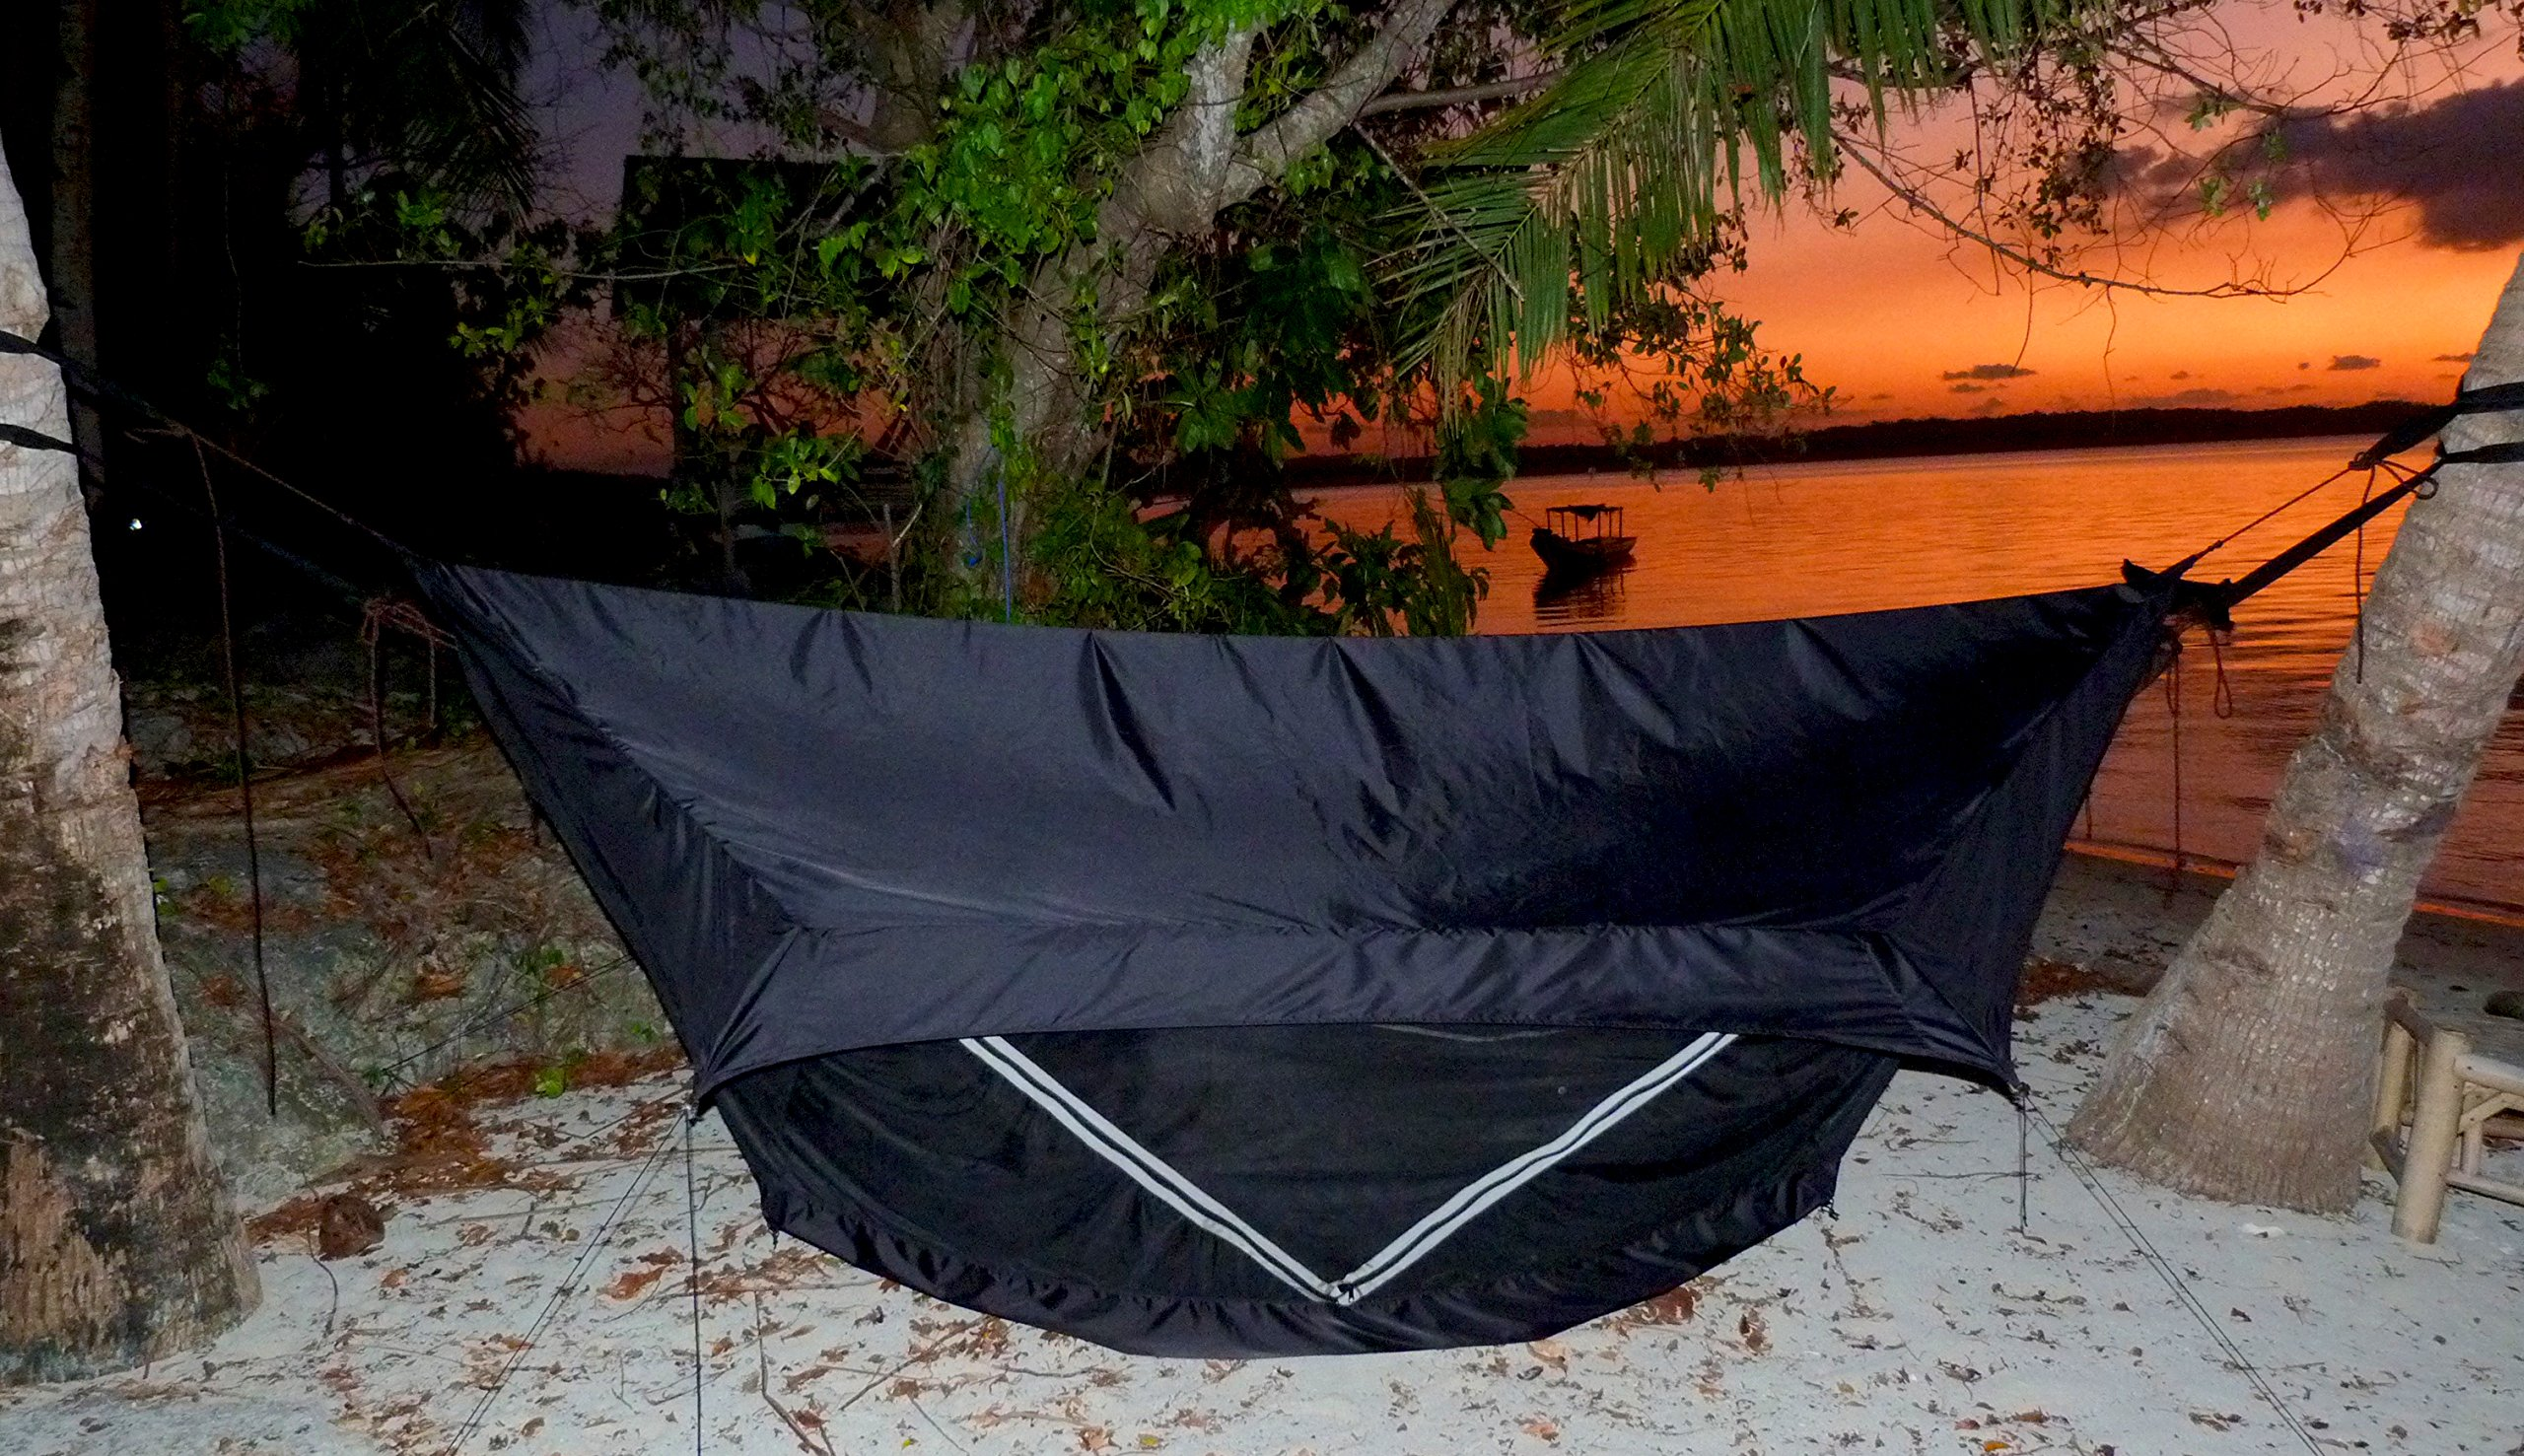 Hammock Bliss Sky Tent 2 - A Revolutionary 2 Person Hammock Tent - Waterproof and Bug Proof Hanging Tent Provides Spacious and Cozy Shelter For 2 Camping Hammocks - Embrace Hammock Camping Comfort by Hammock Bliss (Image #8)